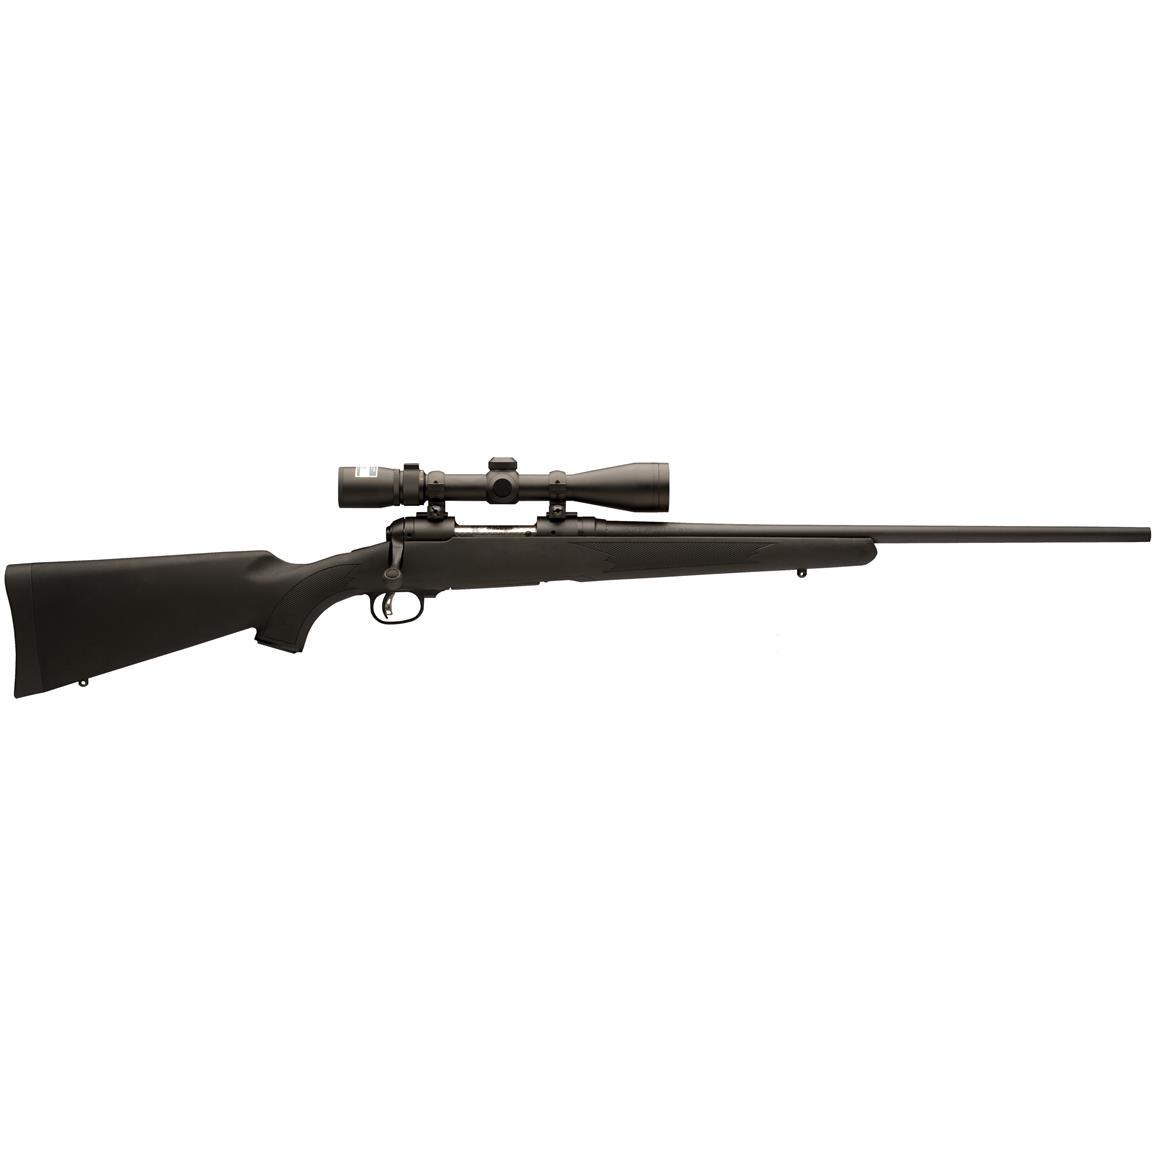 "Savage 111 Trophy Hunter XP, Bolt Action, .30-06 Springfield, 22"" Barrel, Nikon BDC Scope, 5 Rounds"